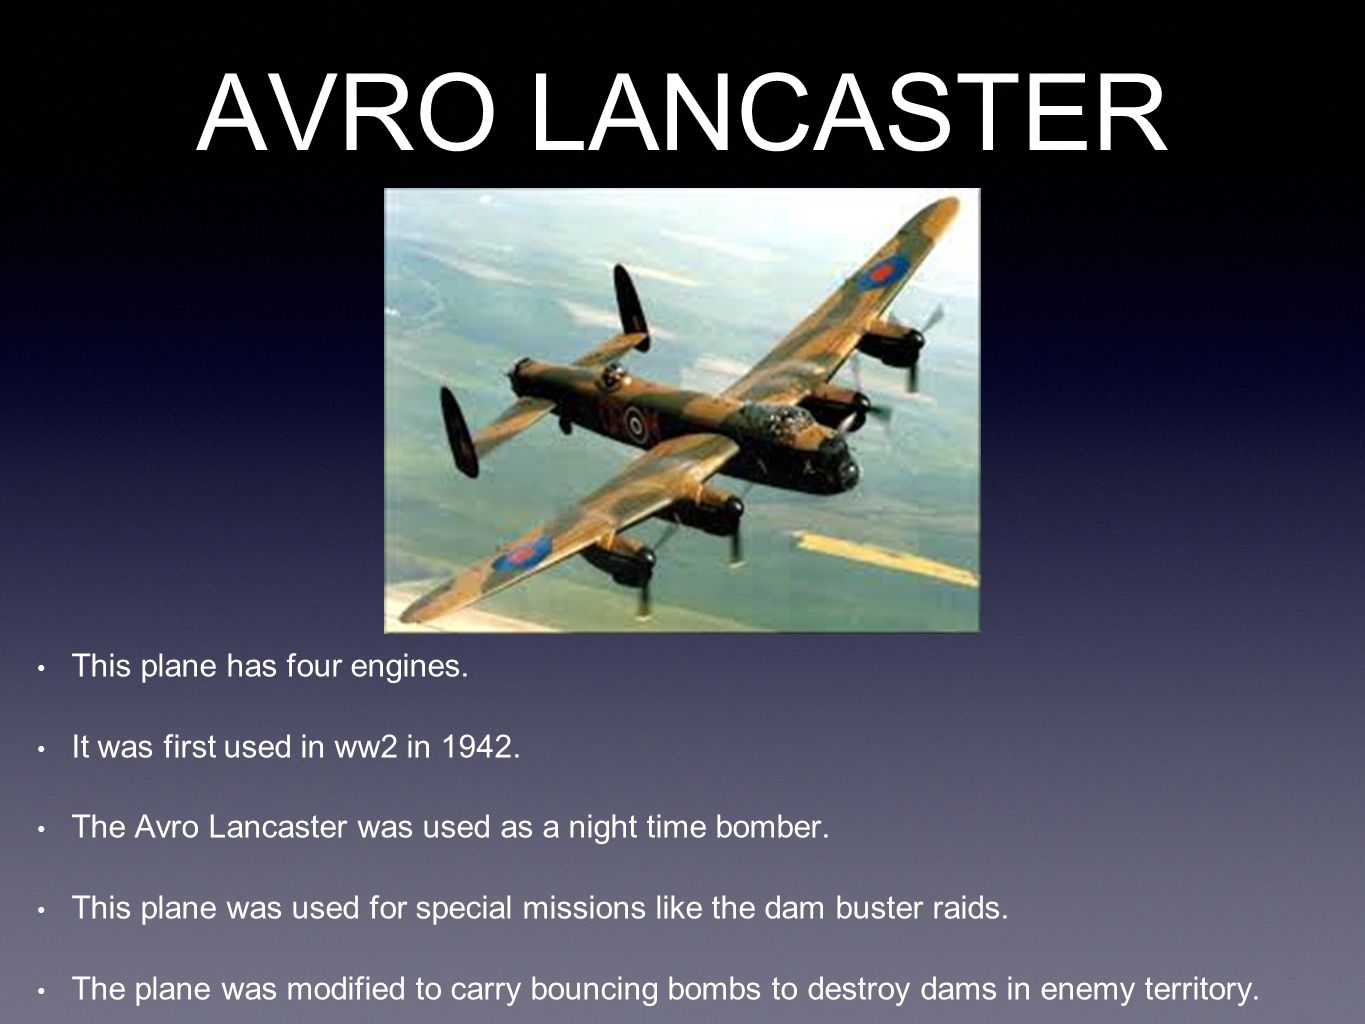 AVRO LANCASTER This plane has four engines. It was first used in ww2 in 1942. The Avro Lancaster was used as a night time bomber. This plane was used